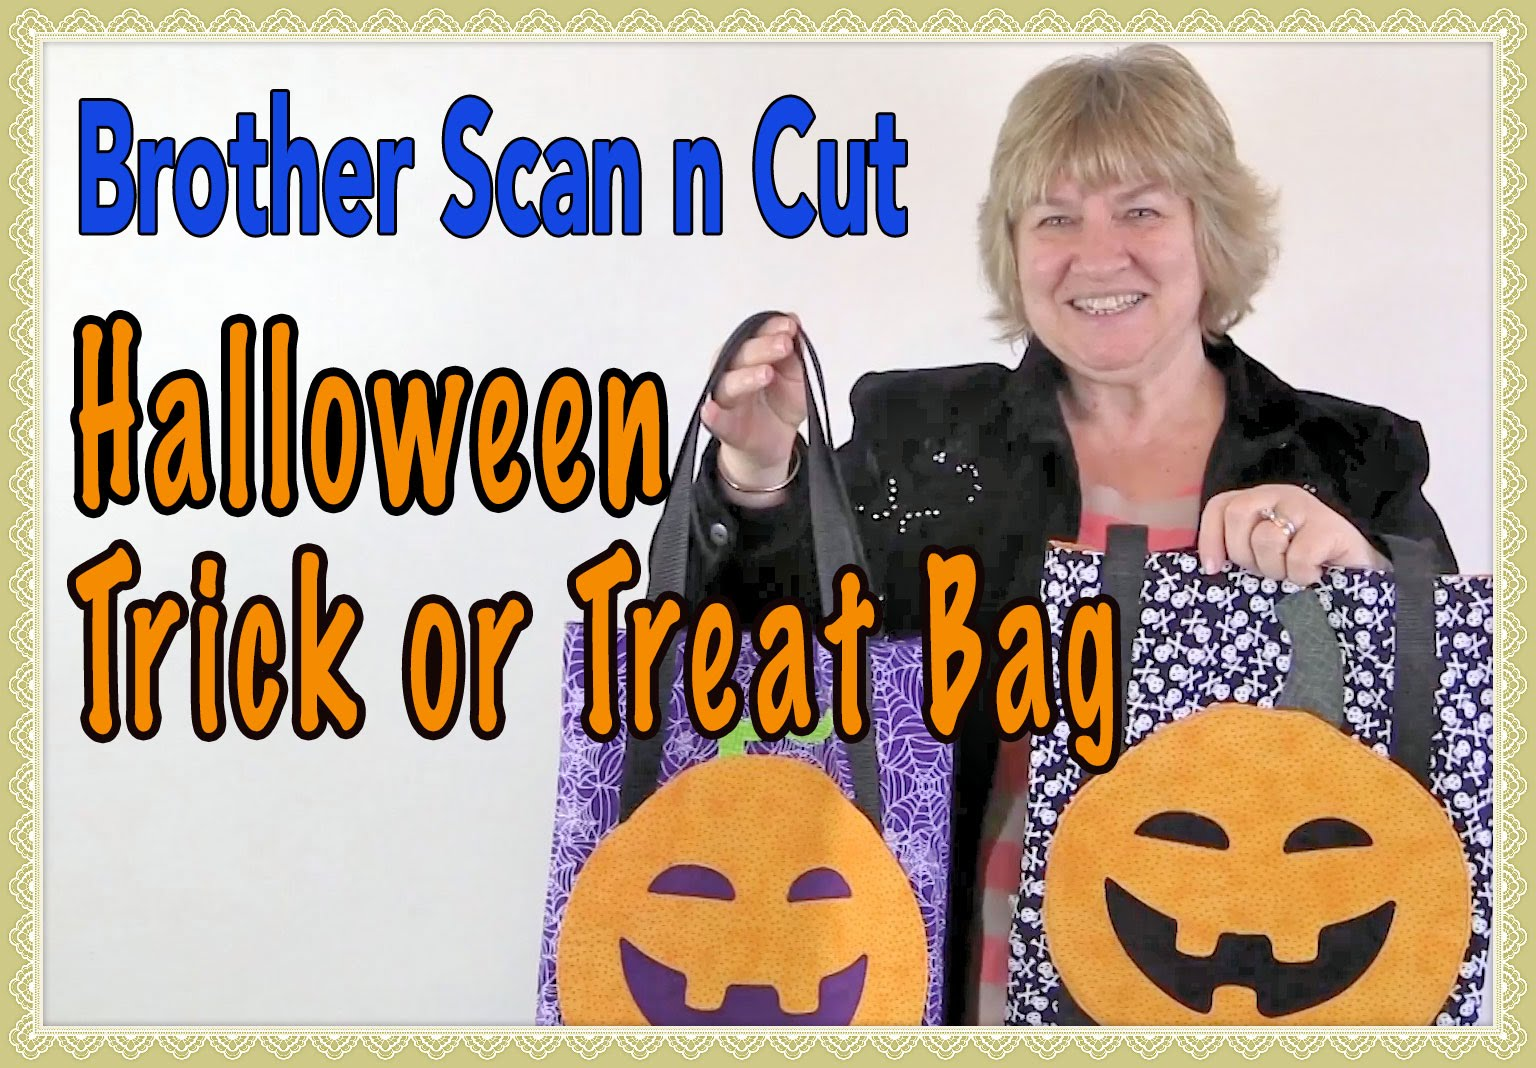 Brother Scan n Cut: Halloween Trick or Treat Bag